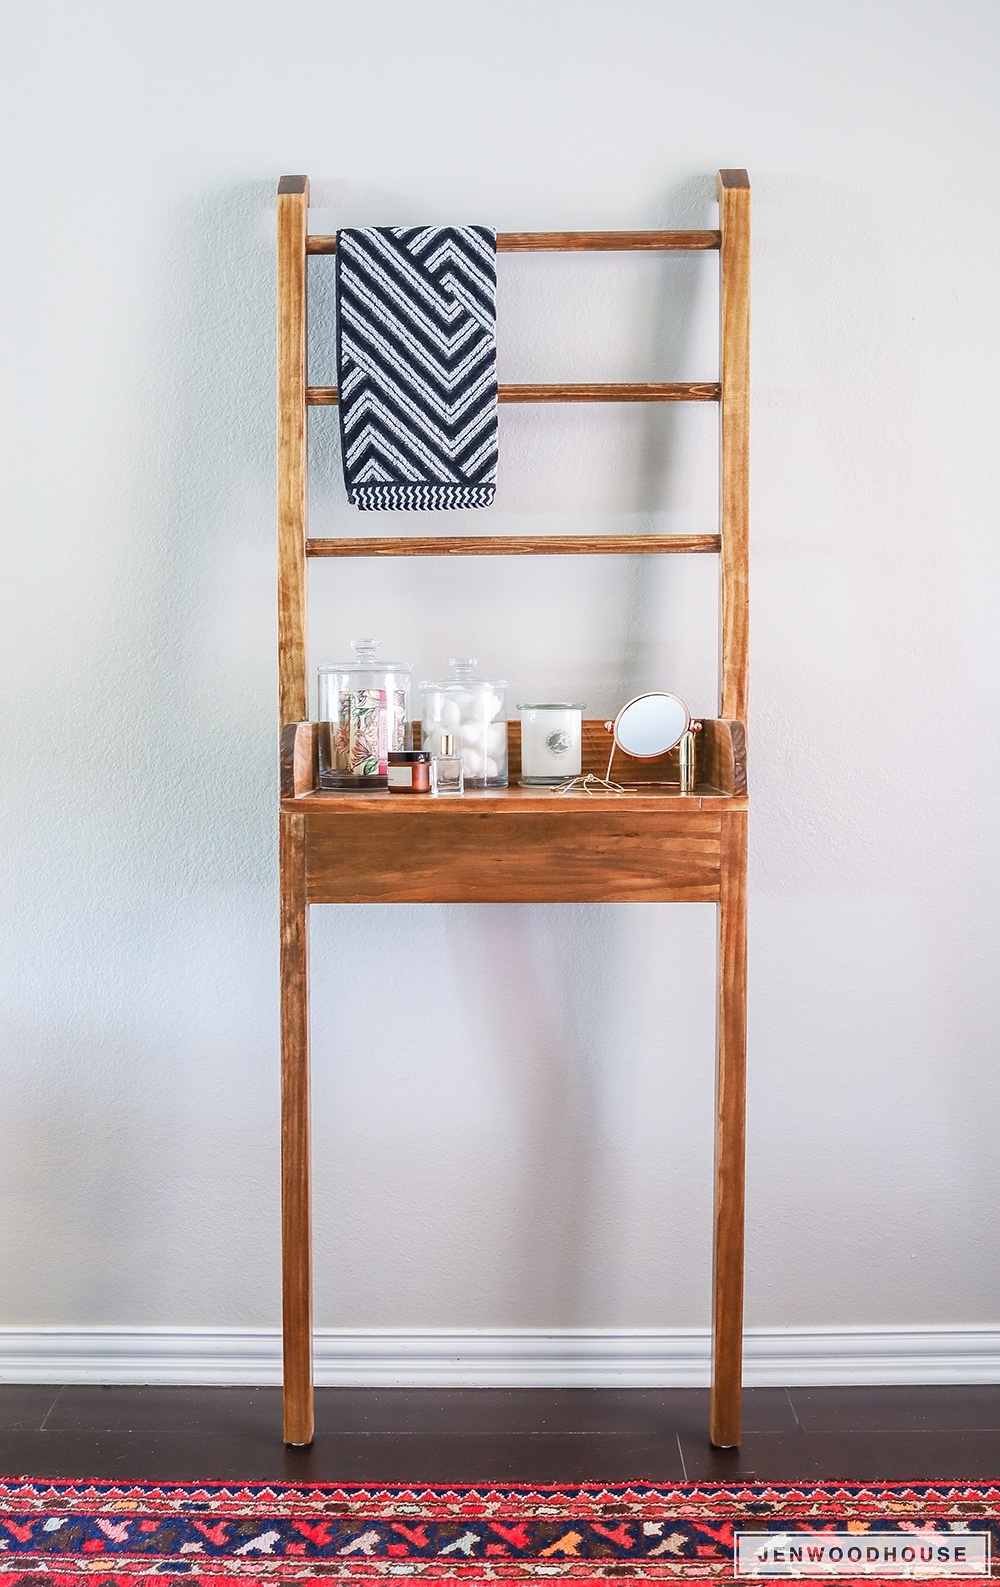 How to build a DIY leaning bathroom shelf